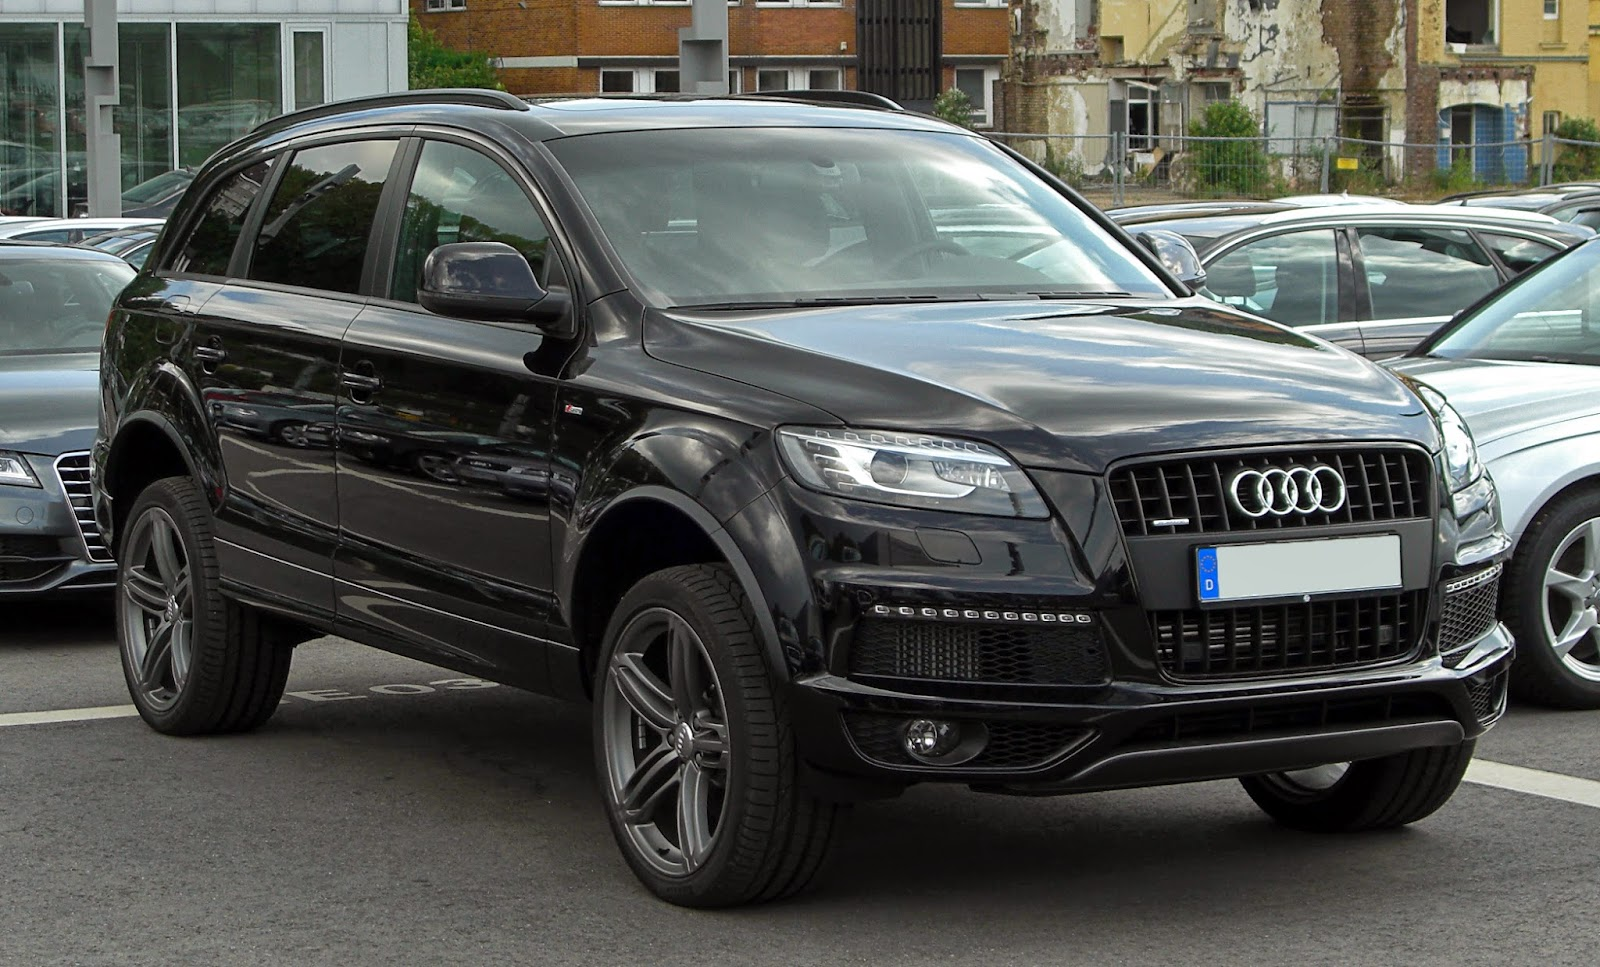 audi q7 suv car information new cars information. Black Bedroom Furniture Sets. Home Design Ideas